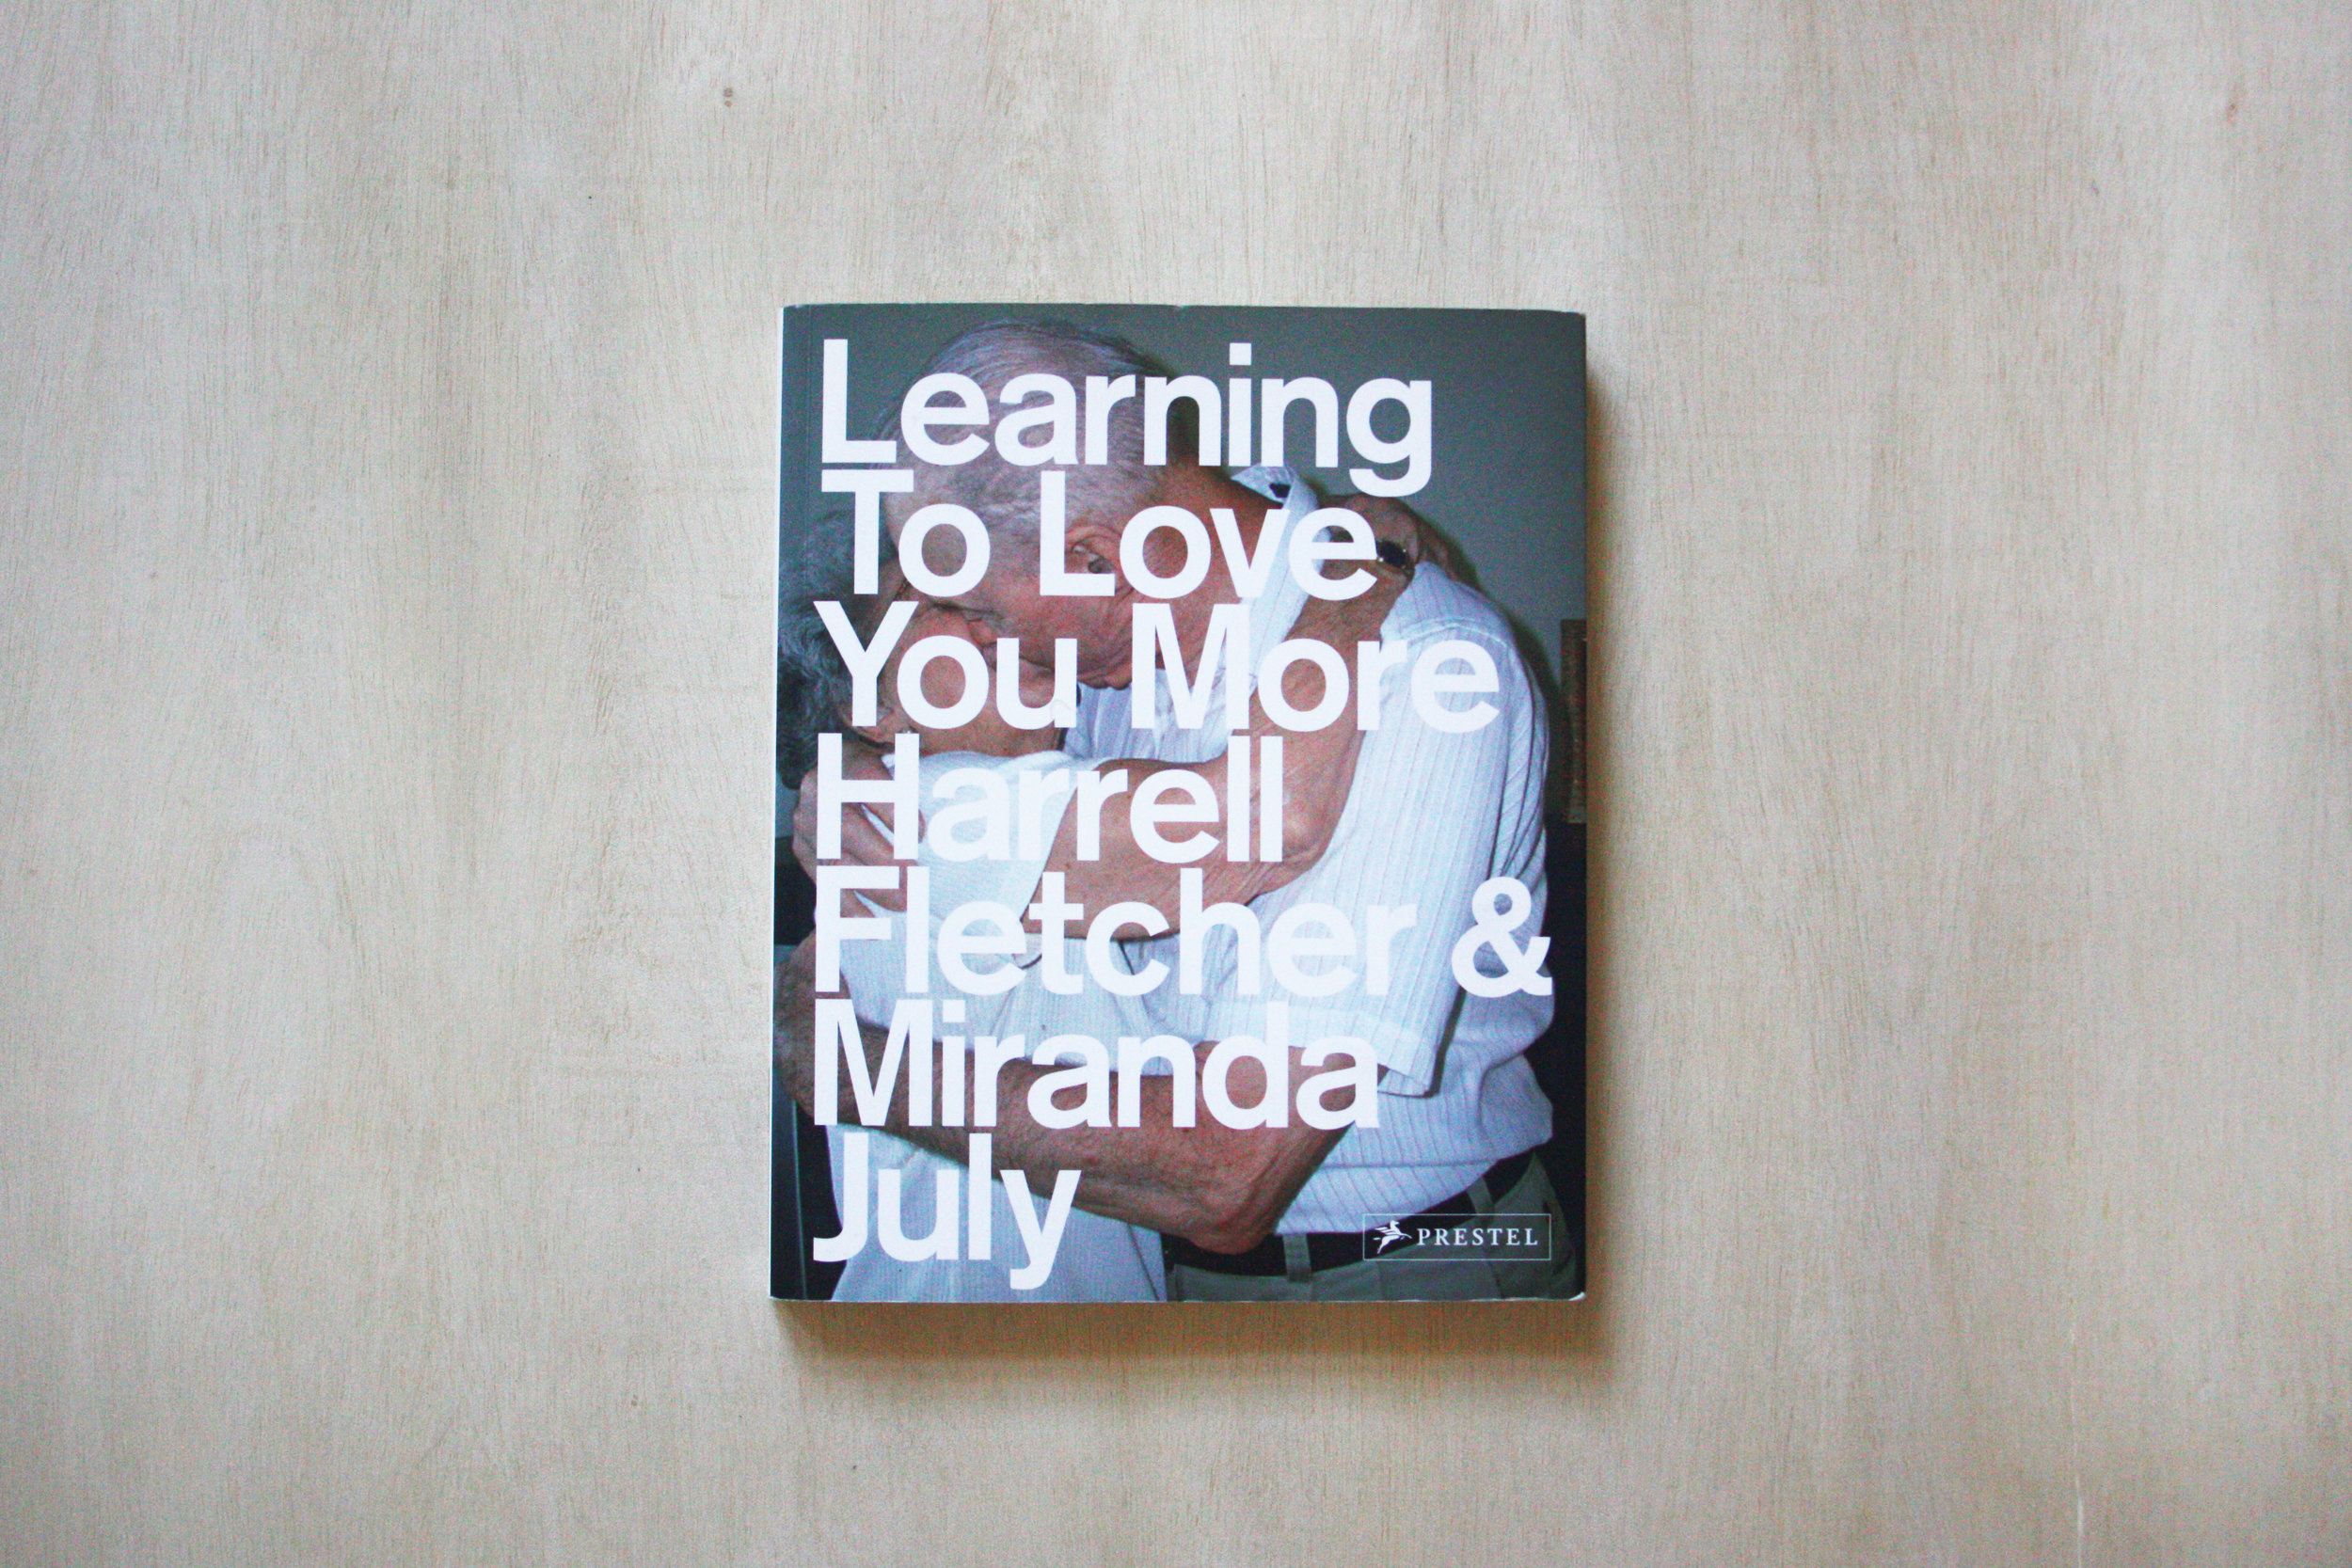 Learning to Love You More  by Harrell Fletcher and Miranda July